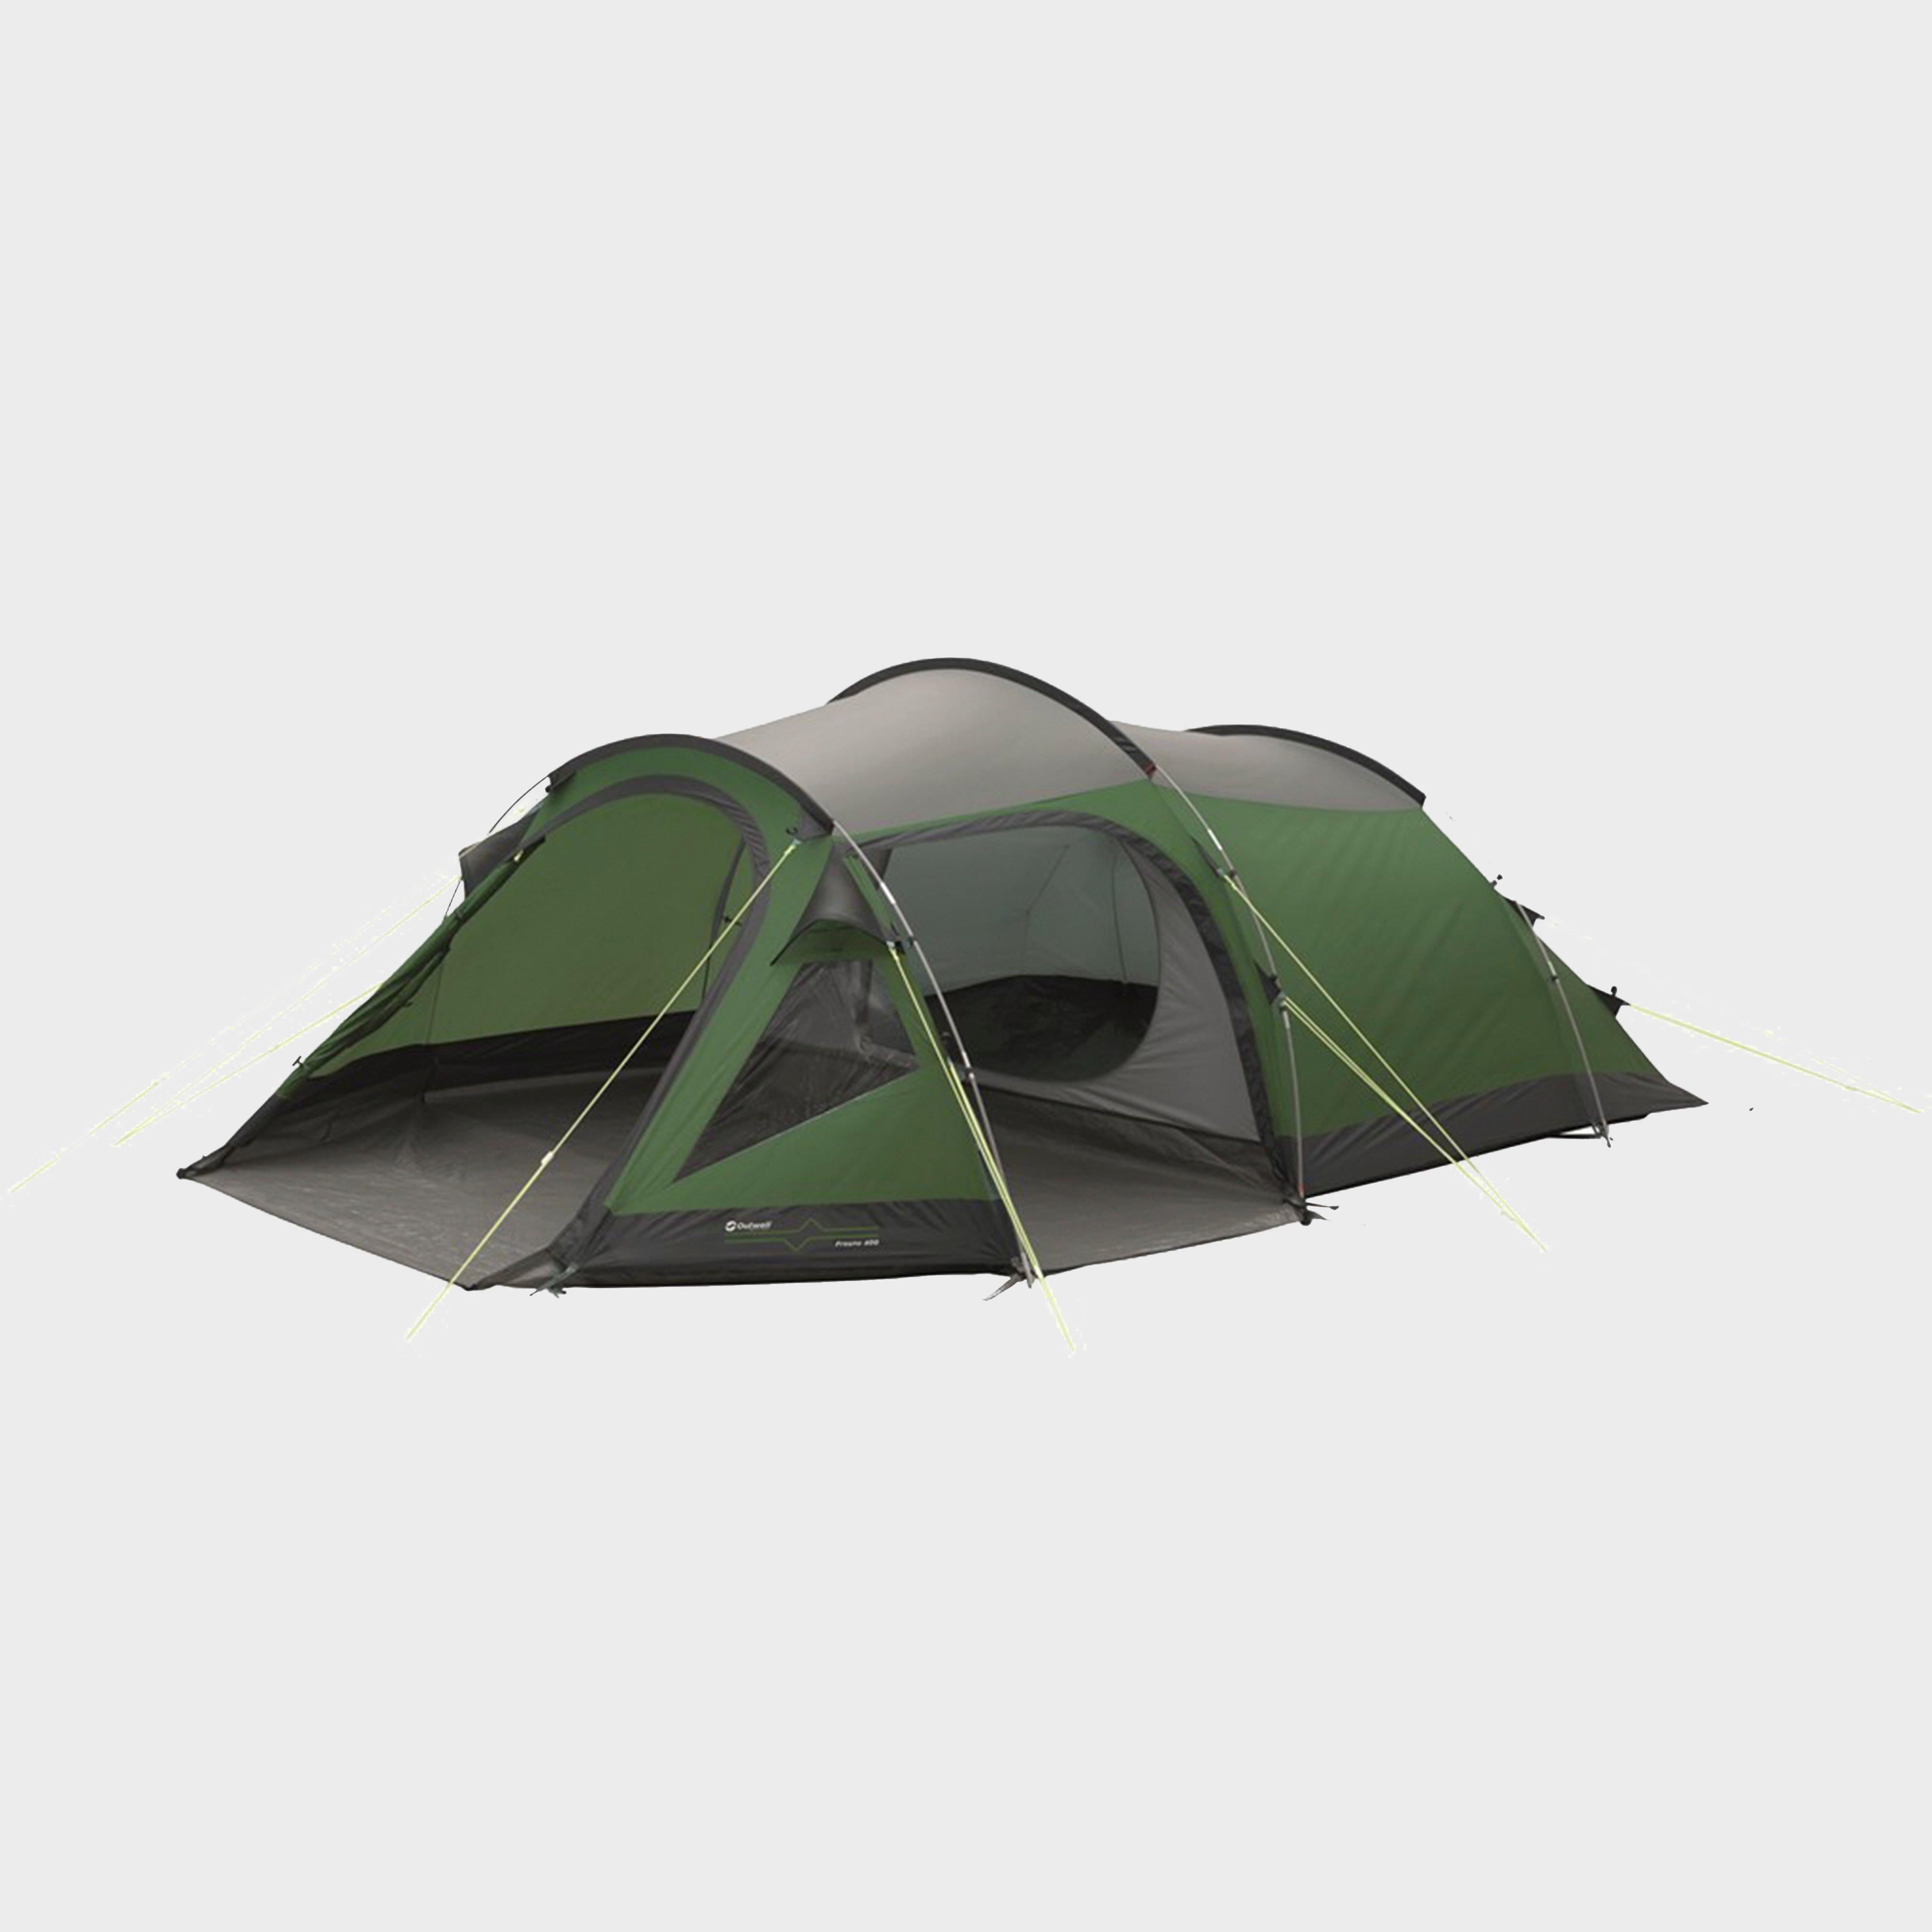 OUTWELL Fresno 400 4 Person Tent & Equipment | Family Tents | Ultimate Outdoors